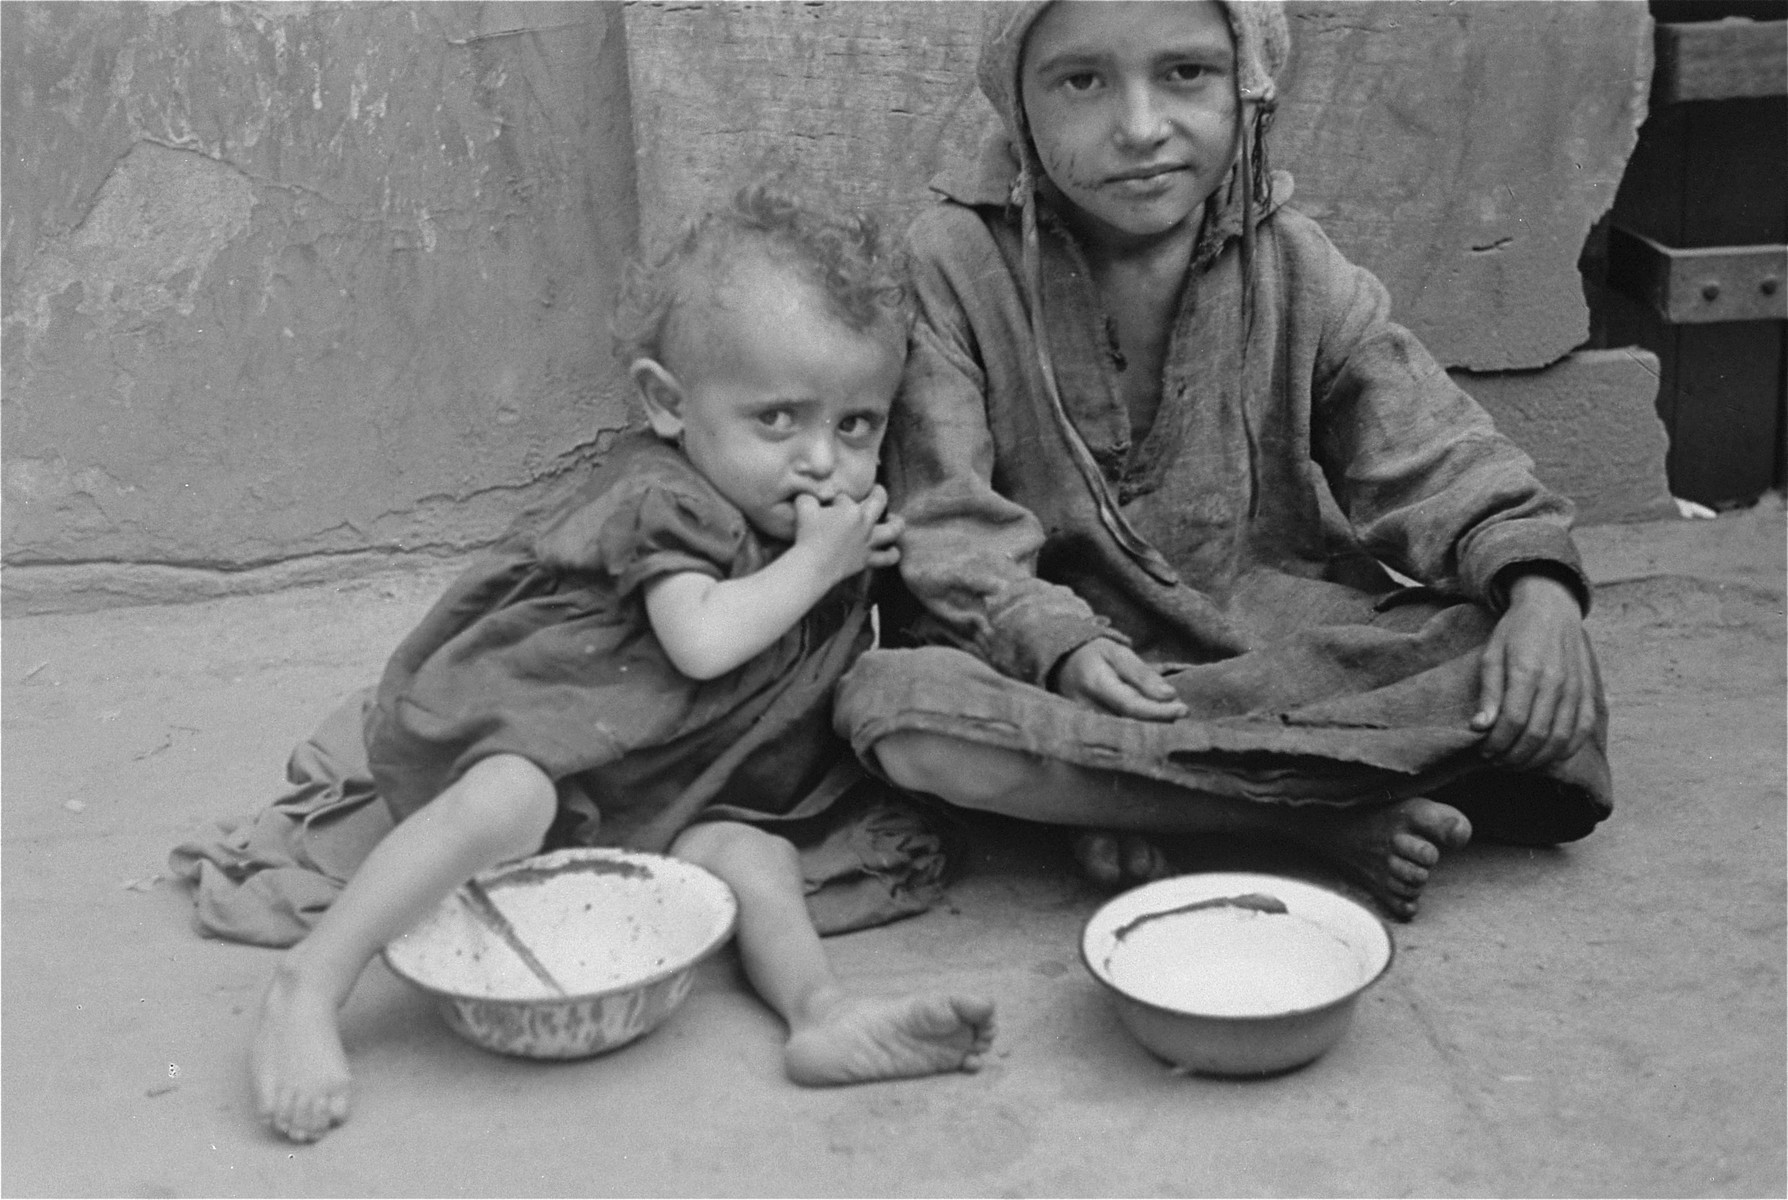 Two destitute children sit with empty bowls on a street in the Warsaw ghetto.